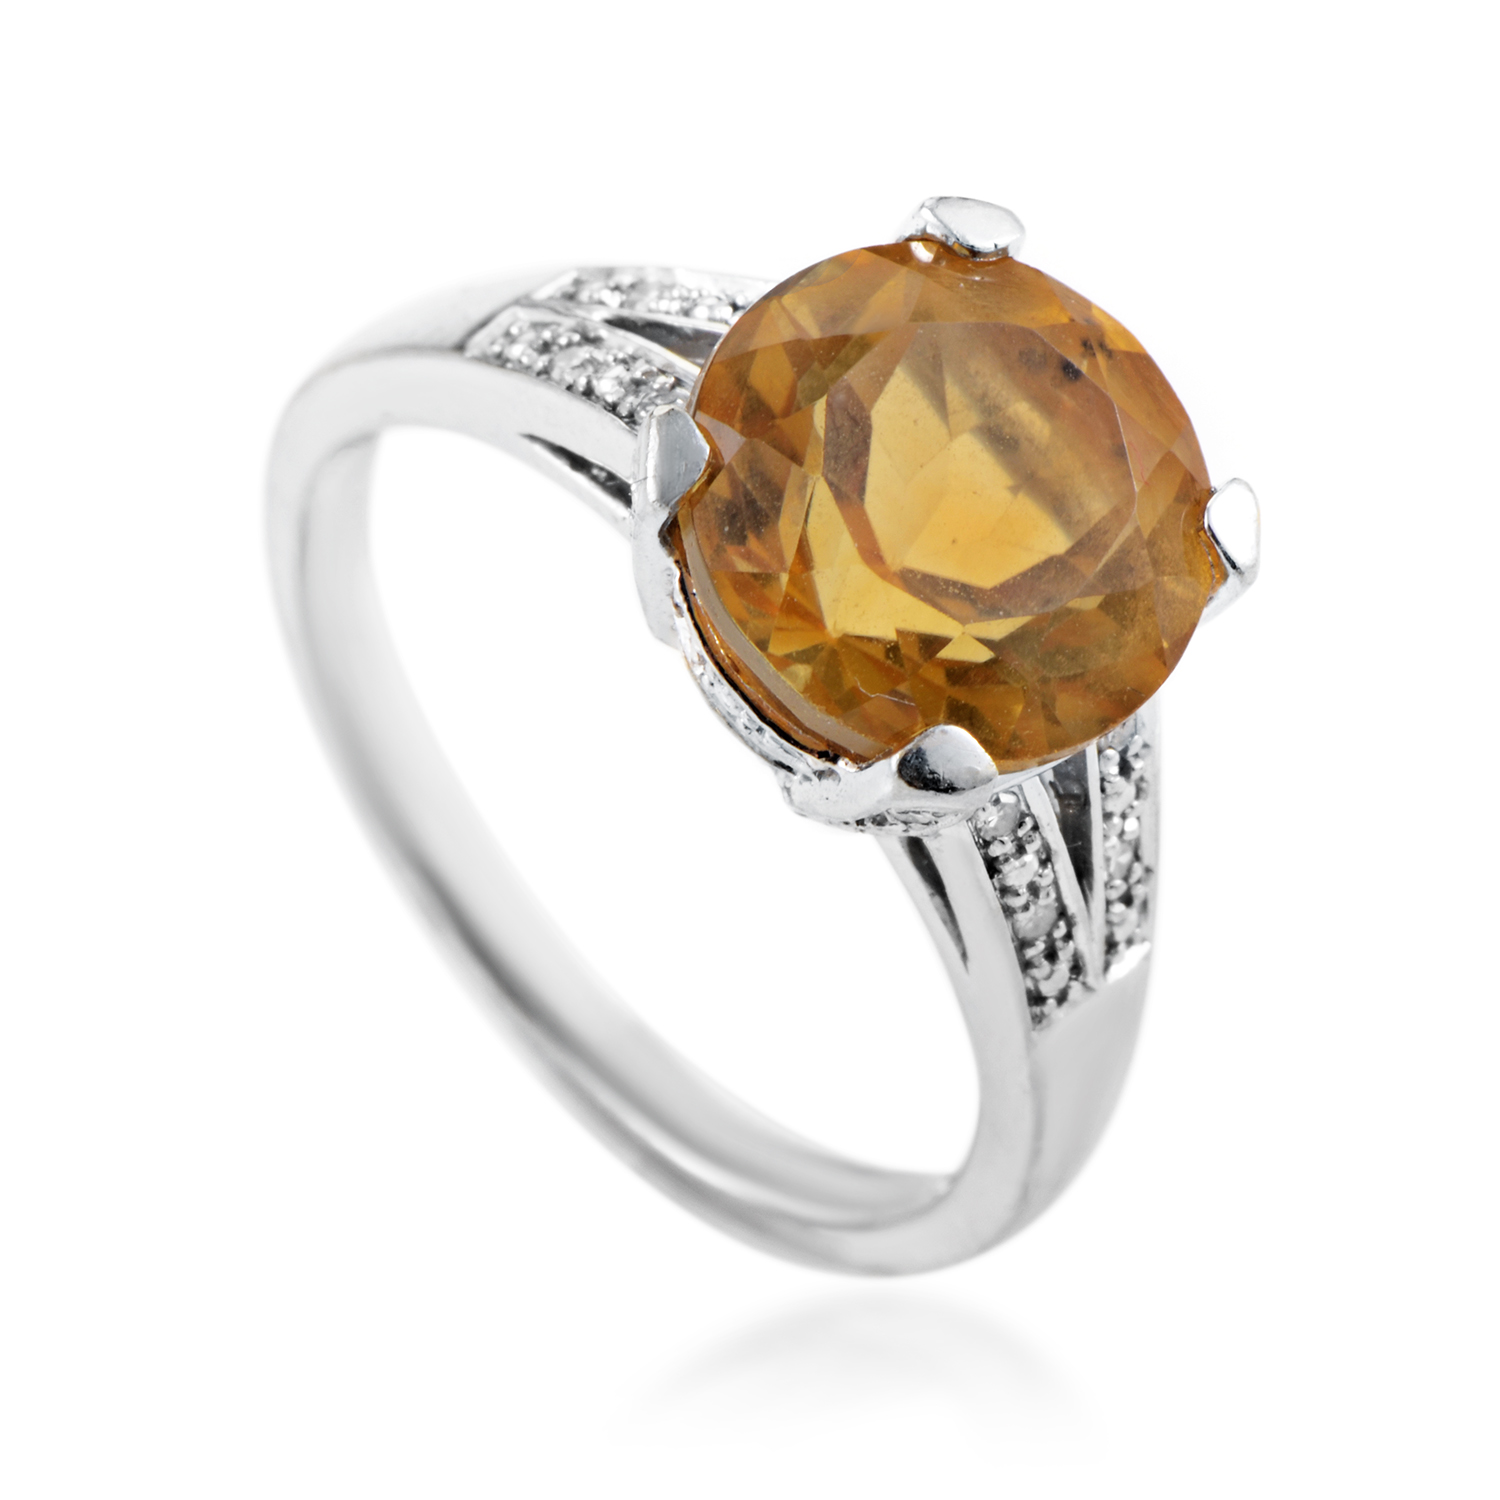 Women's 14K White Gold Diamond & Citrine Ring RC4-10062WAM